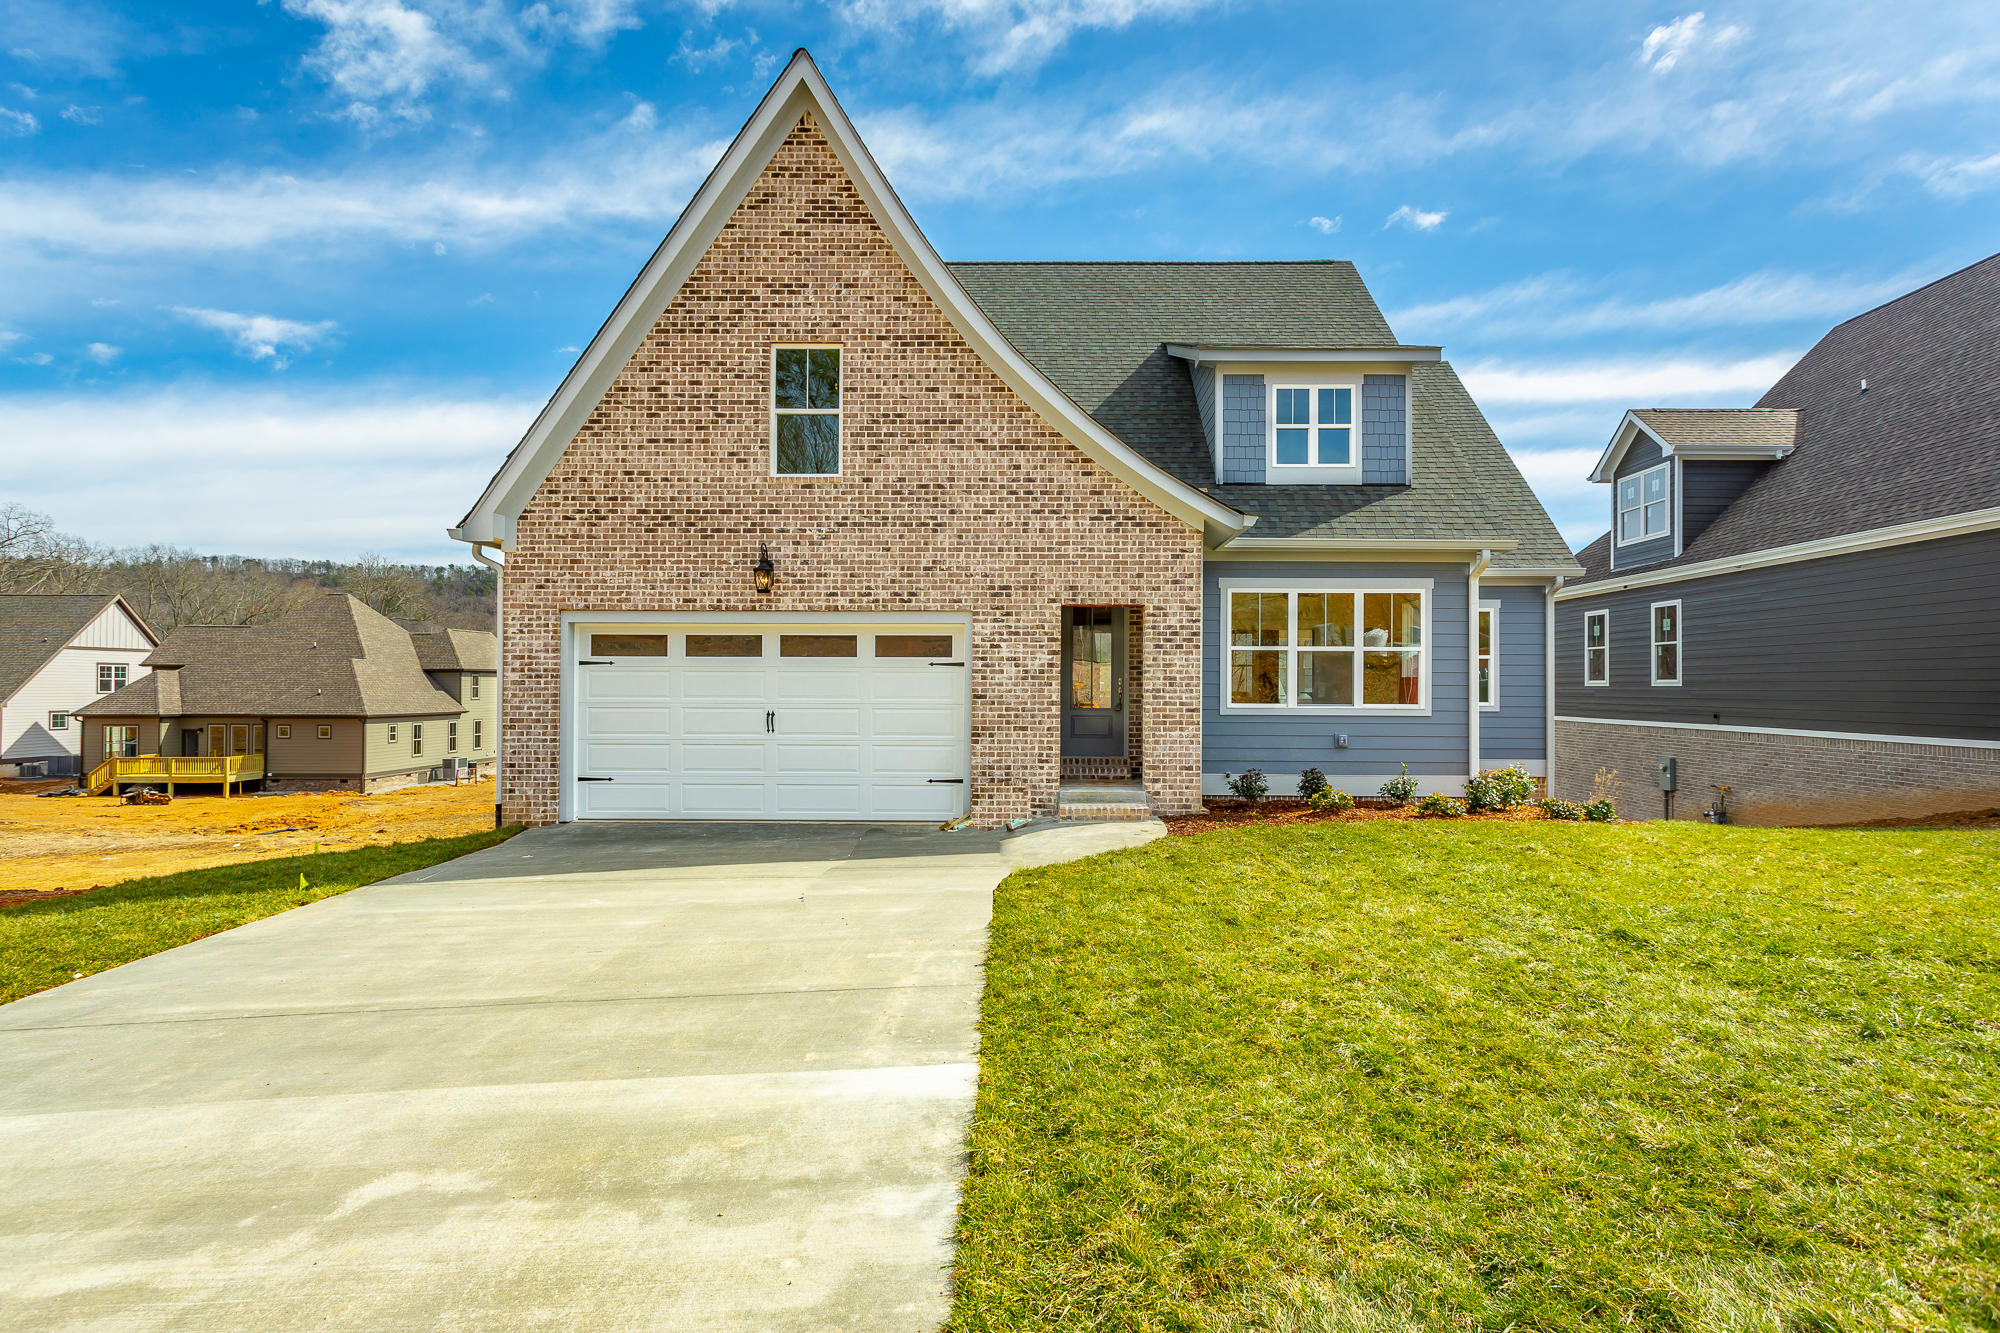 2389 Weeping Willow Dr, Ooltewah, TN 37363